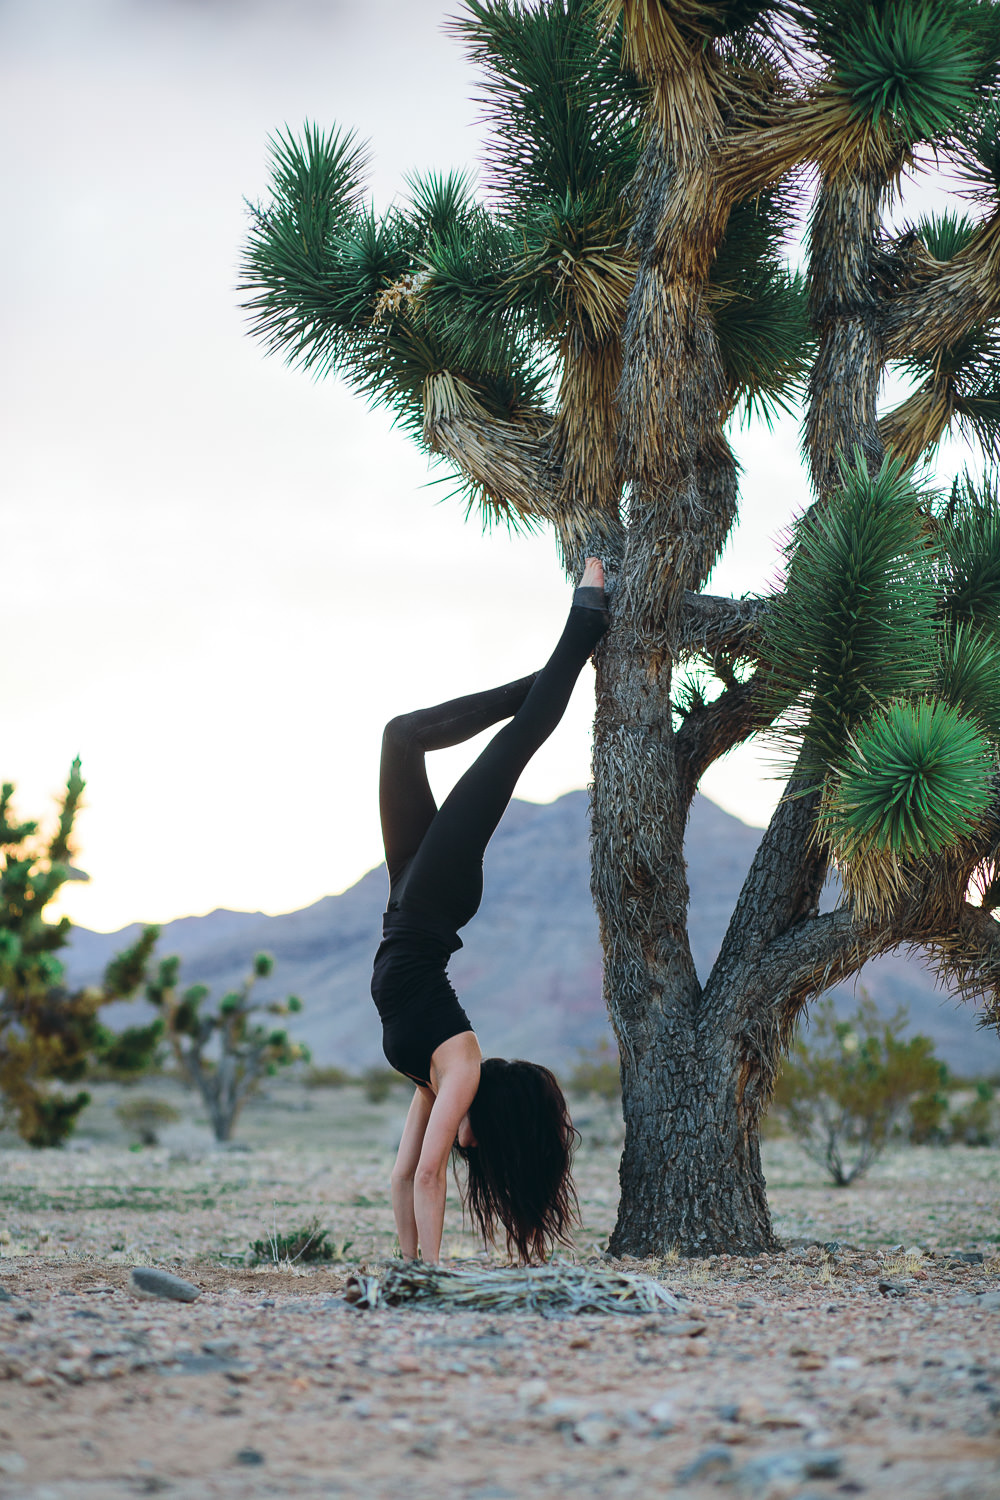 yoga in the desert Southern Utah Adventure photographer hybrid film and digital